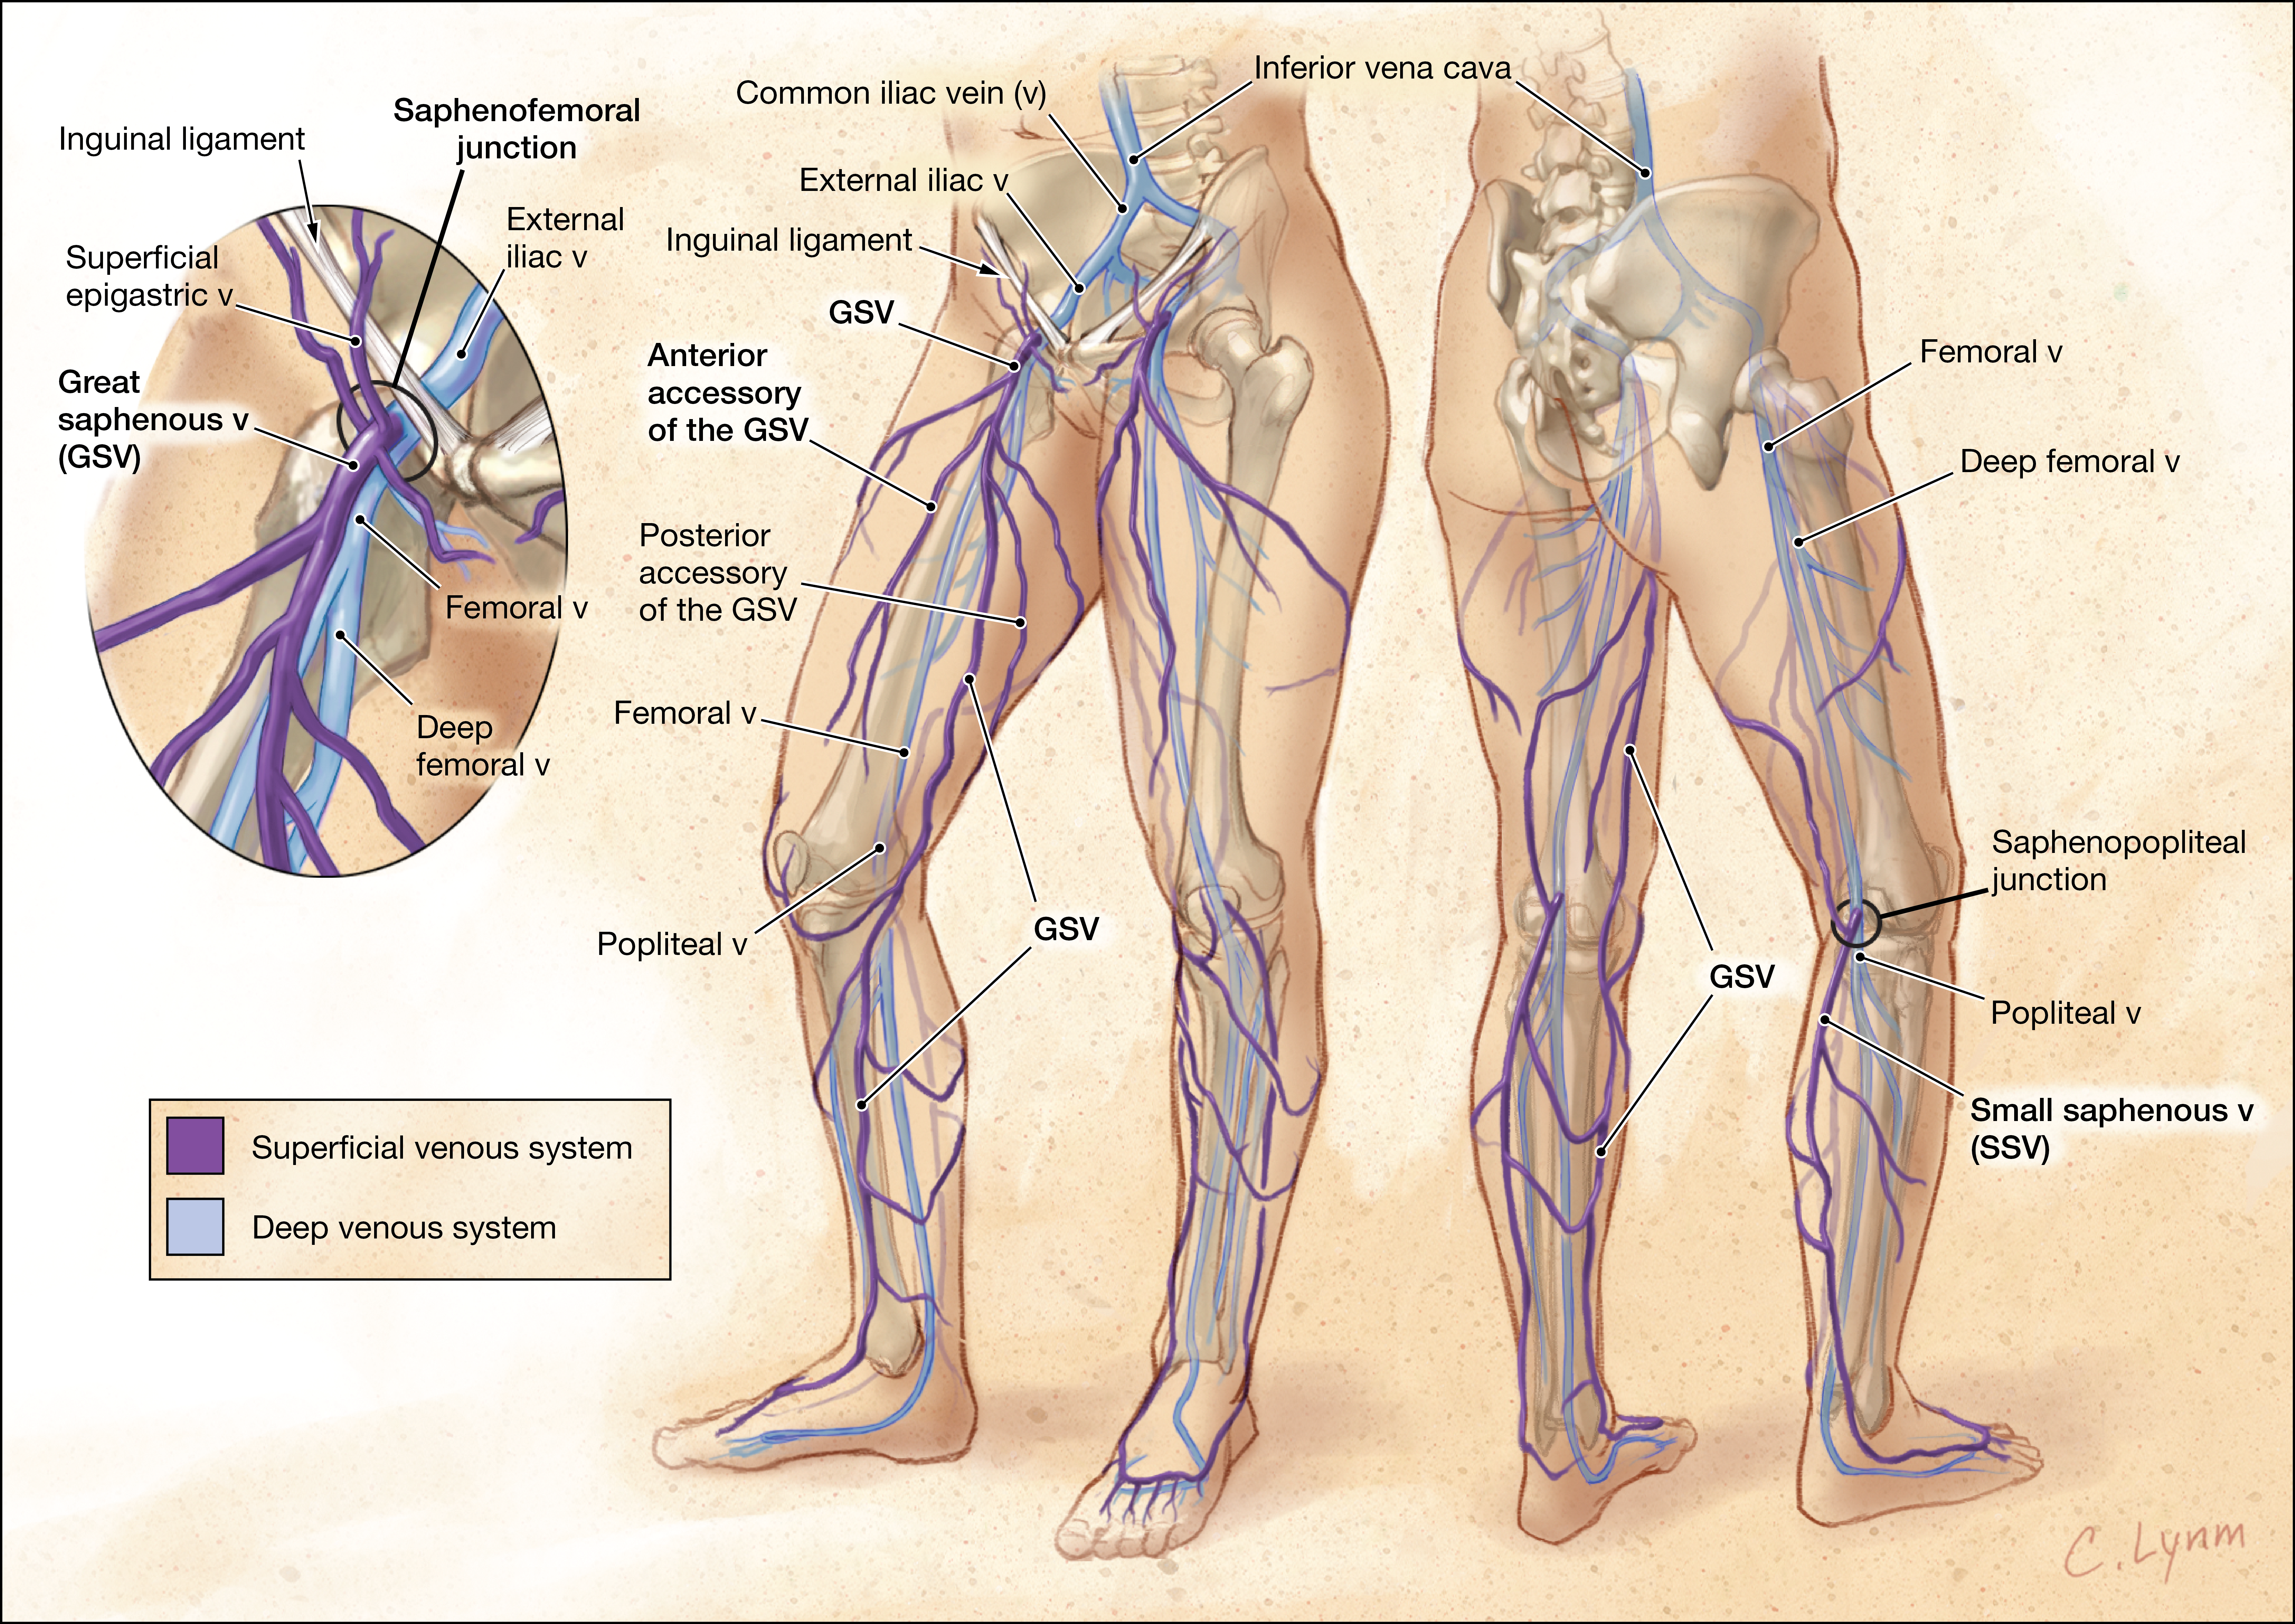 Management Of Varicose Veins And Venous Insufficiency Dermatology